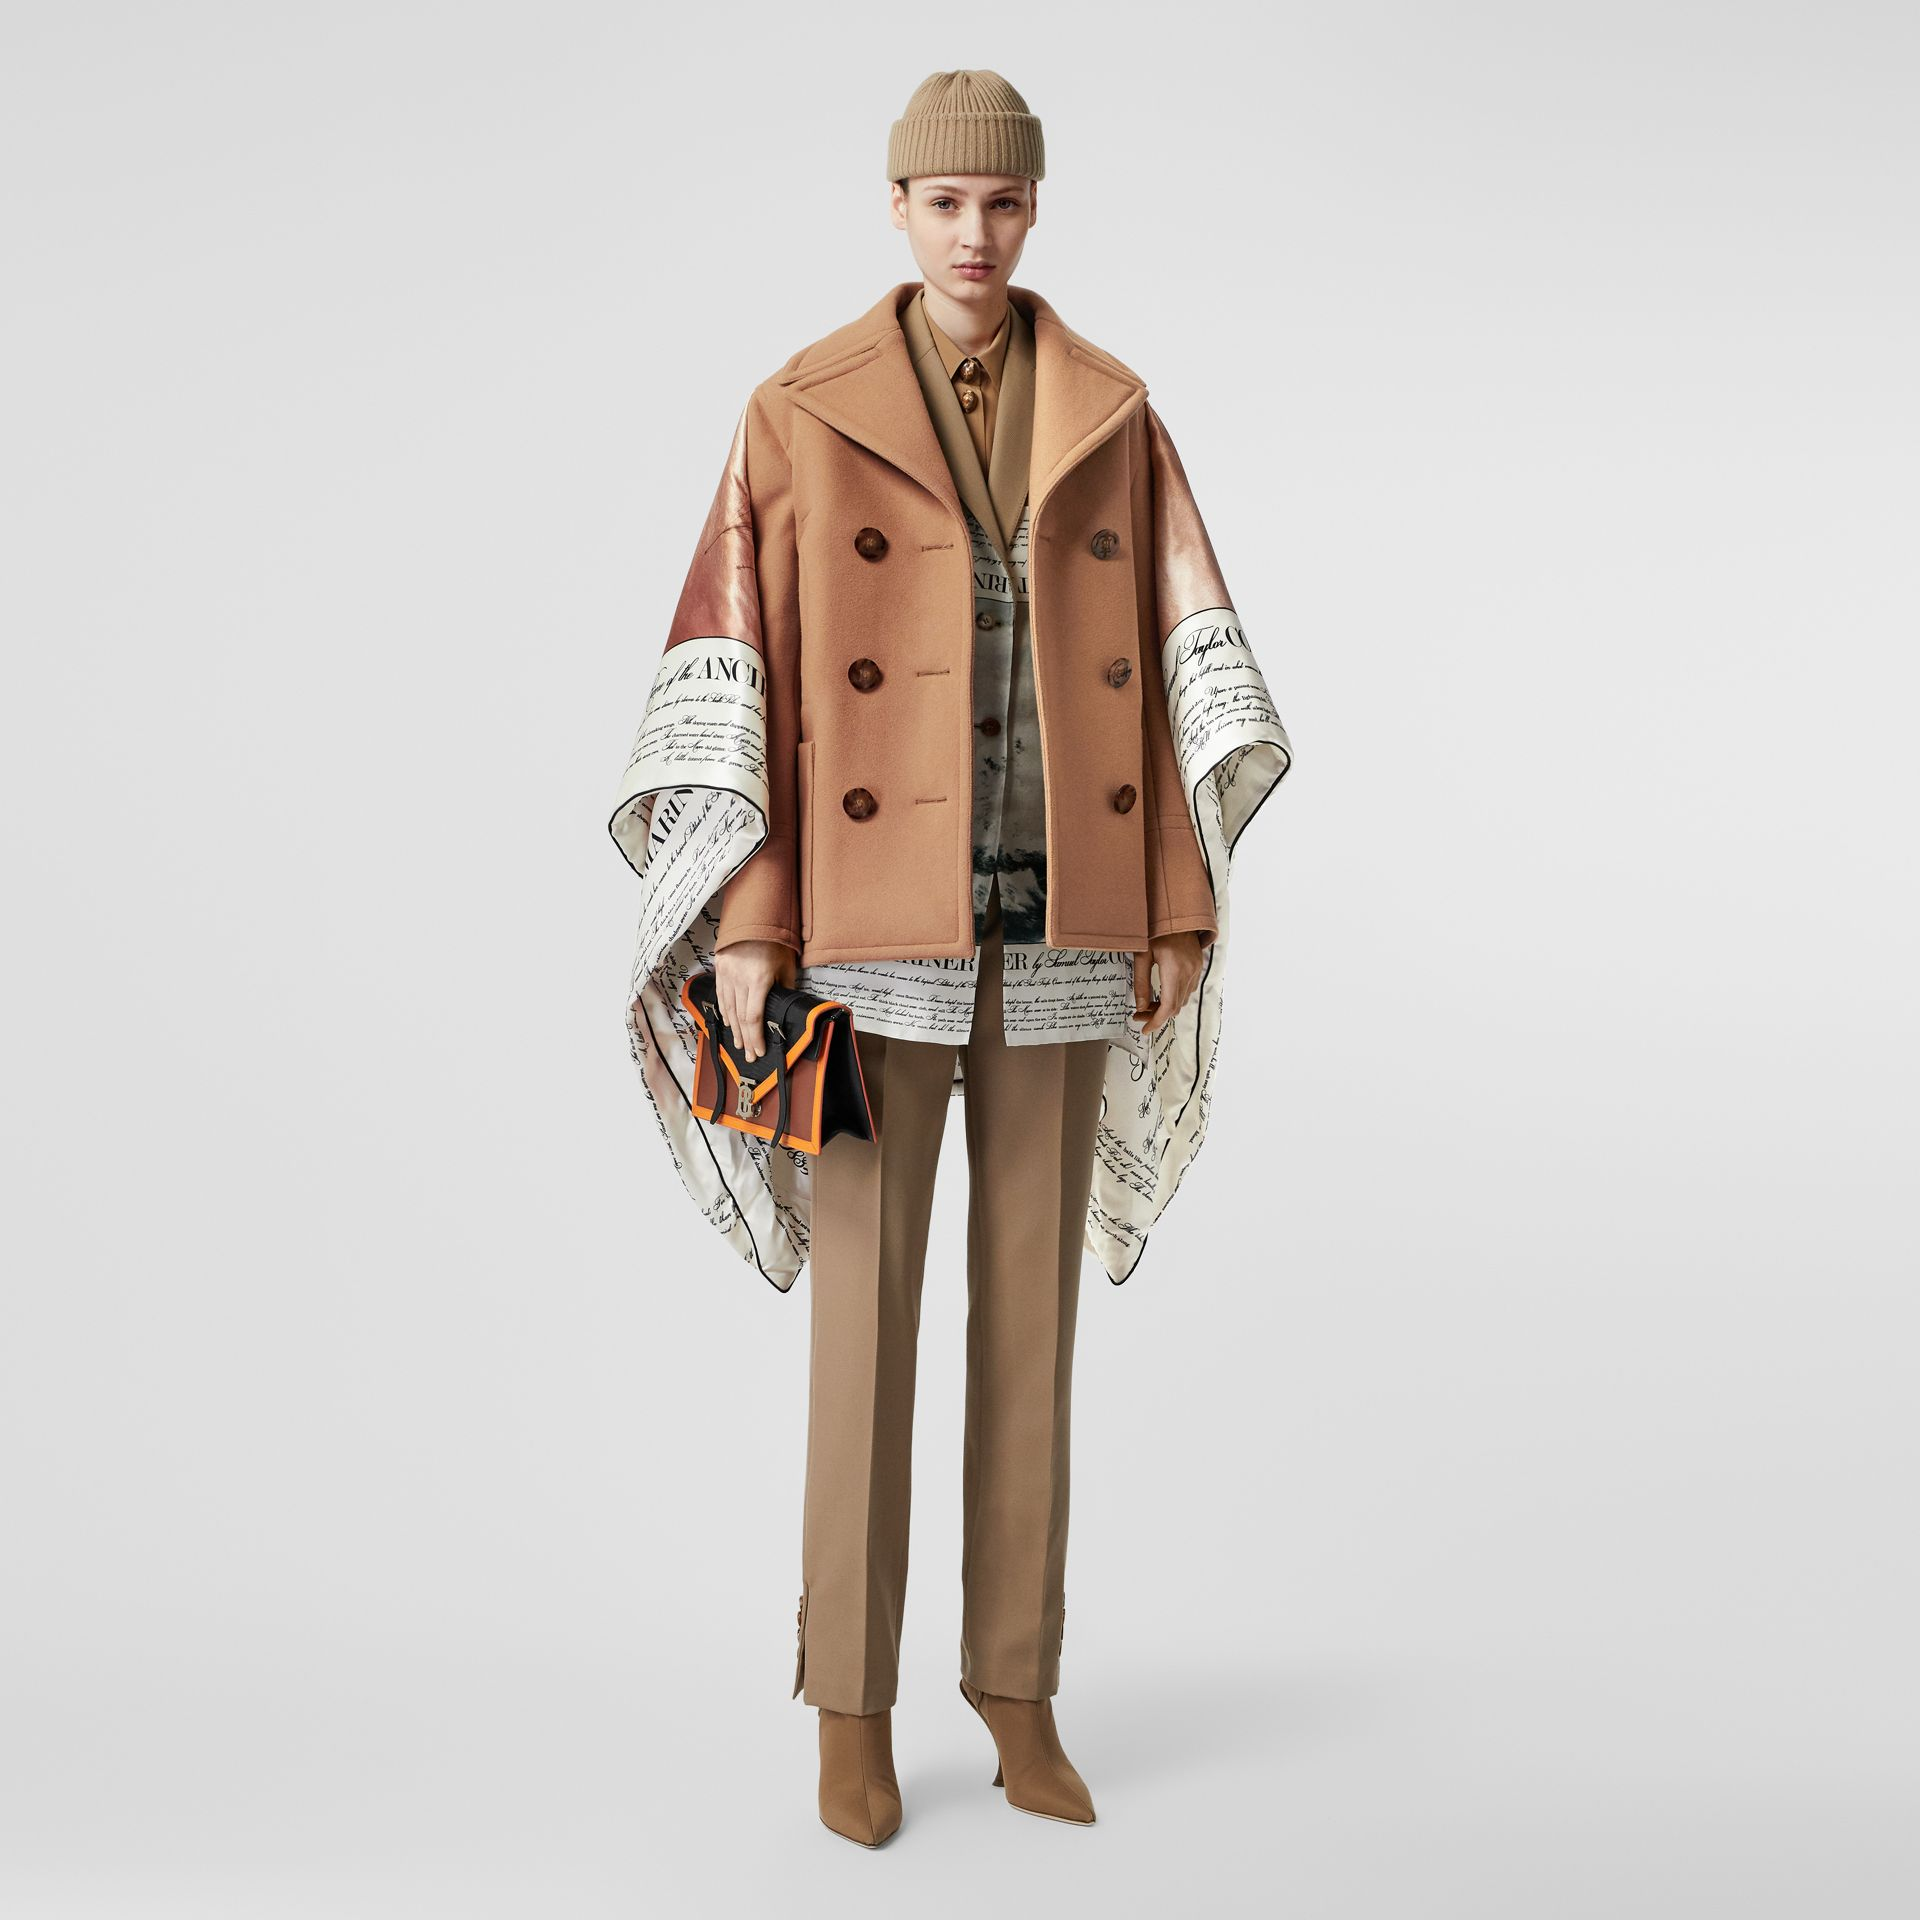 Mariner Print Blanket Detail Technical Wool Pea Coat in Warm Camel - Women | Burberry Hong Kong S.A.R - gallery image 1